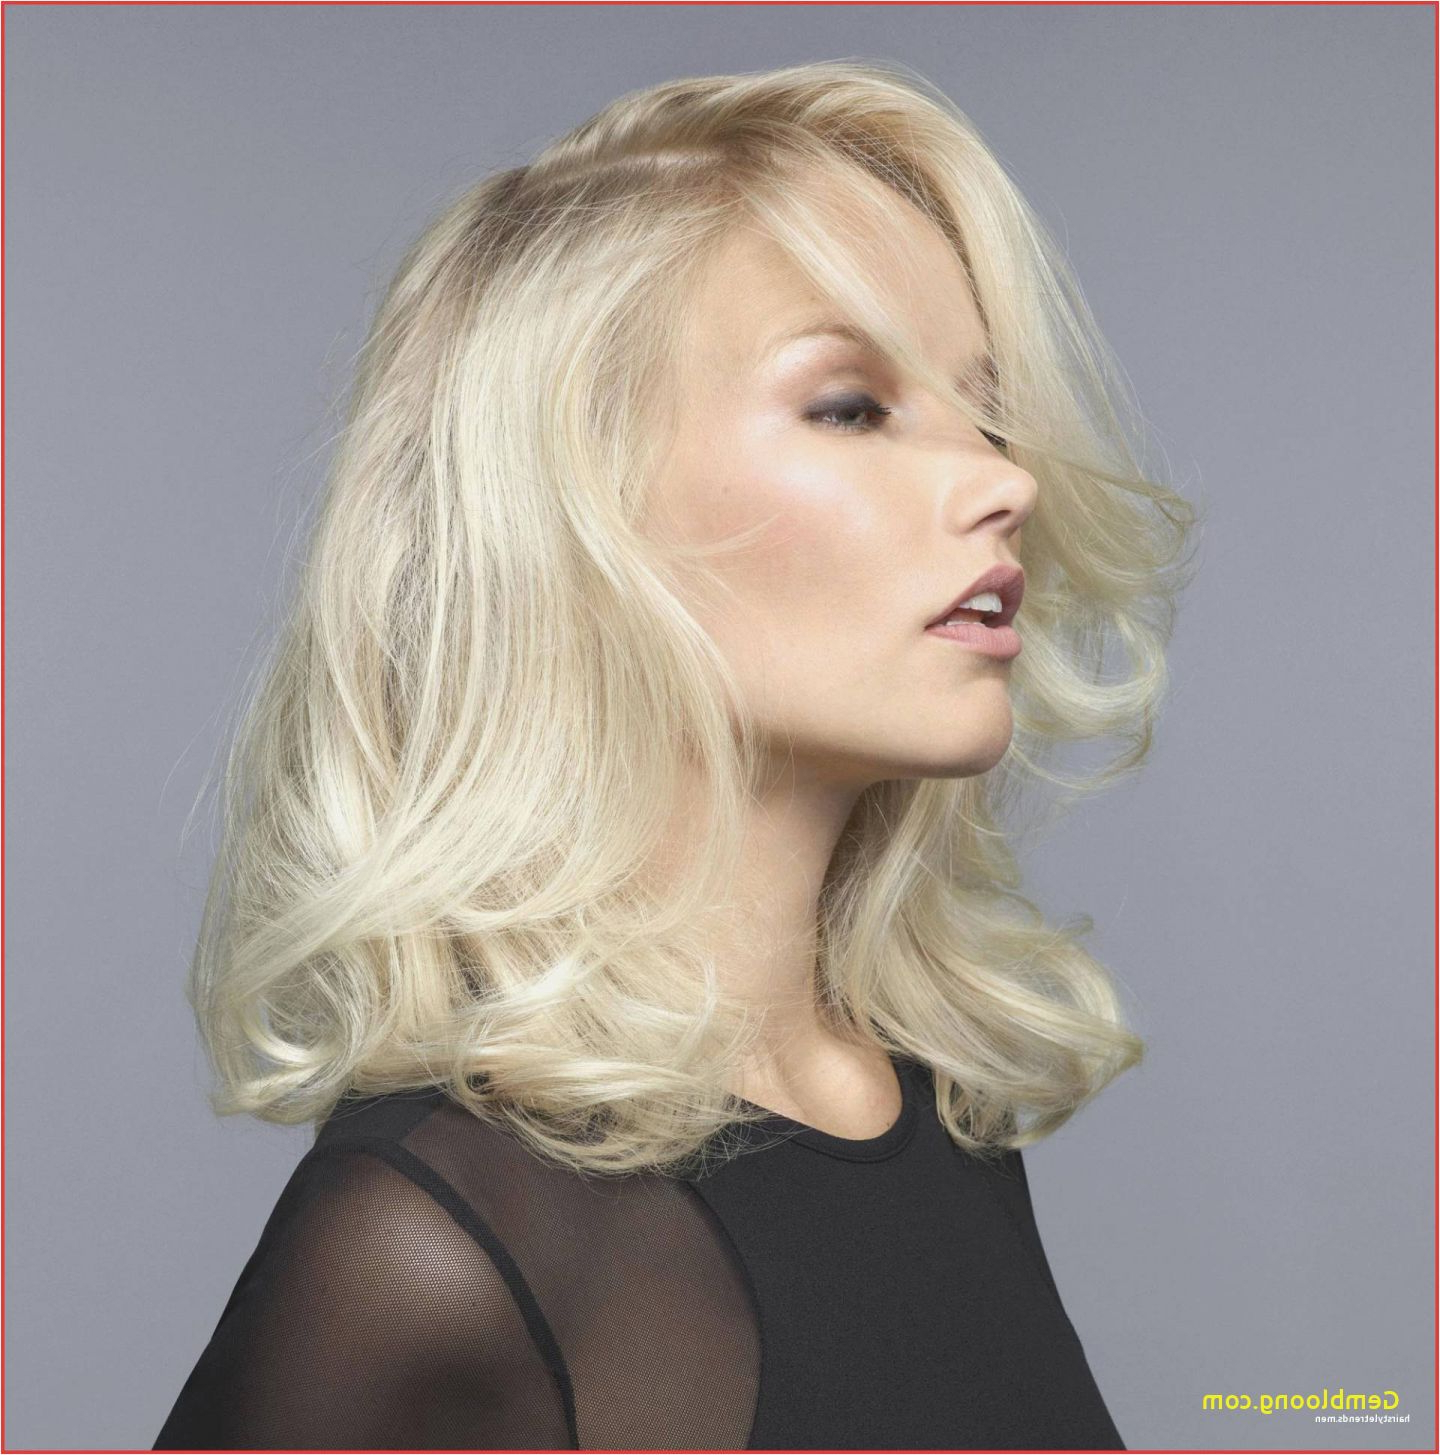 ✓ 29 Delicate Short Medium Hairstyles To Make You Look Younger ❗ With Famous Medium Haircuts To Make You Look Younger (View 1 of 20)